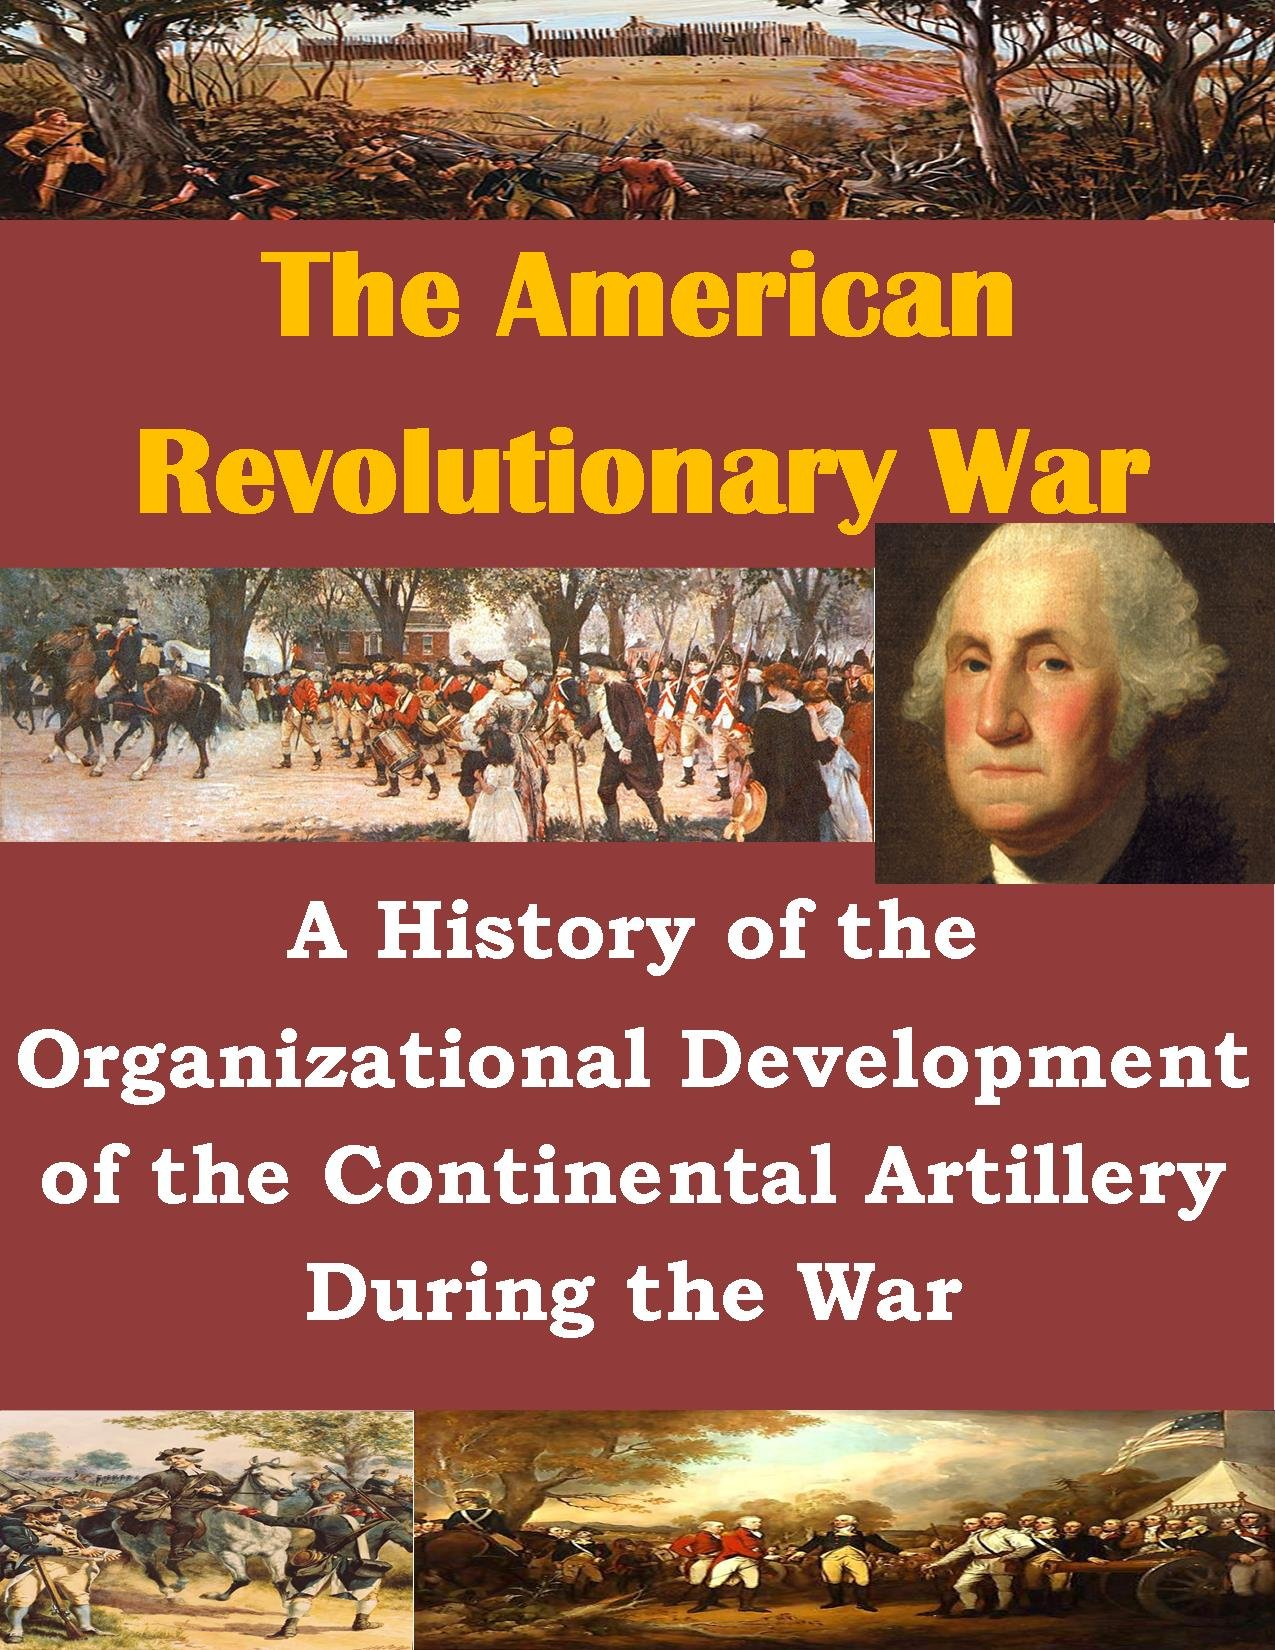 A History of the Organizational Development of the Continental Artillery During the War (The American Revolutionary War Book 1)